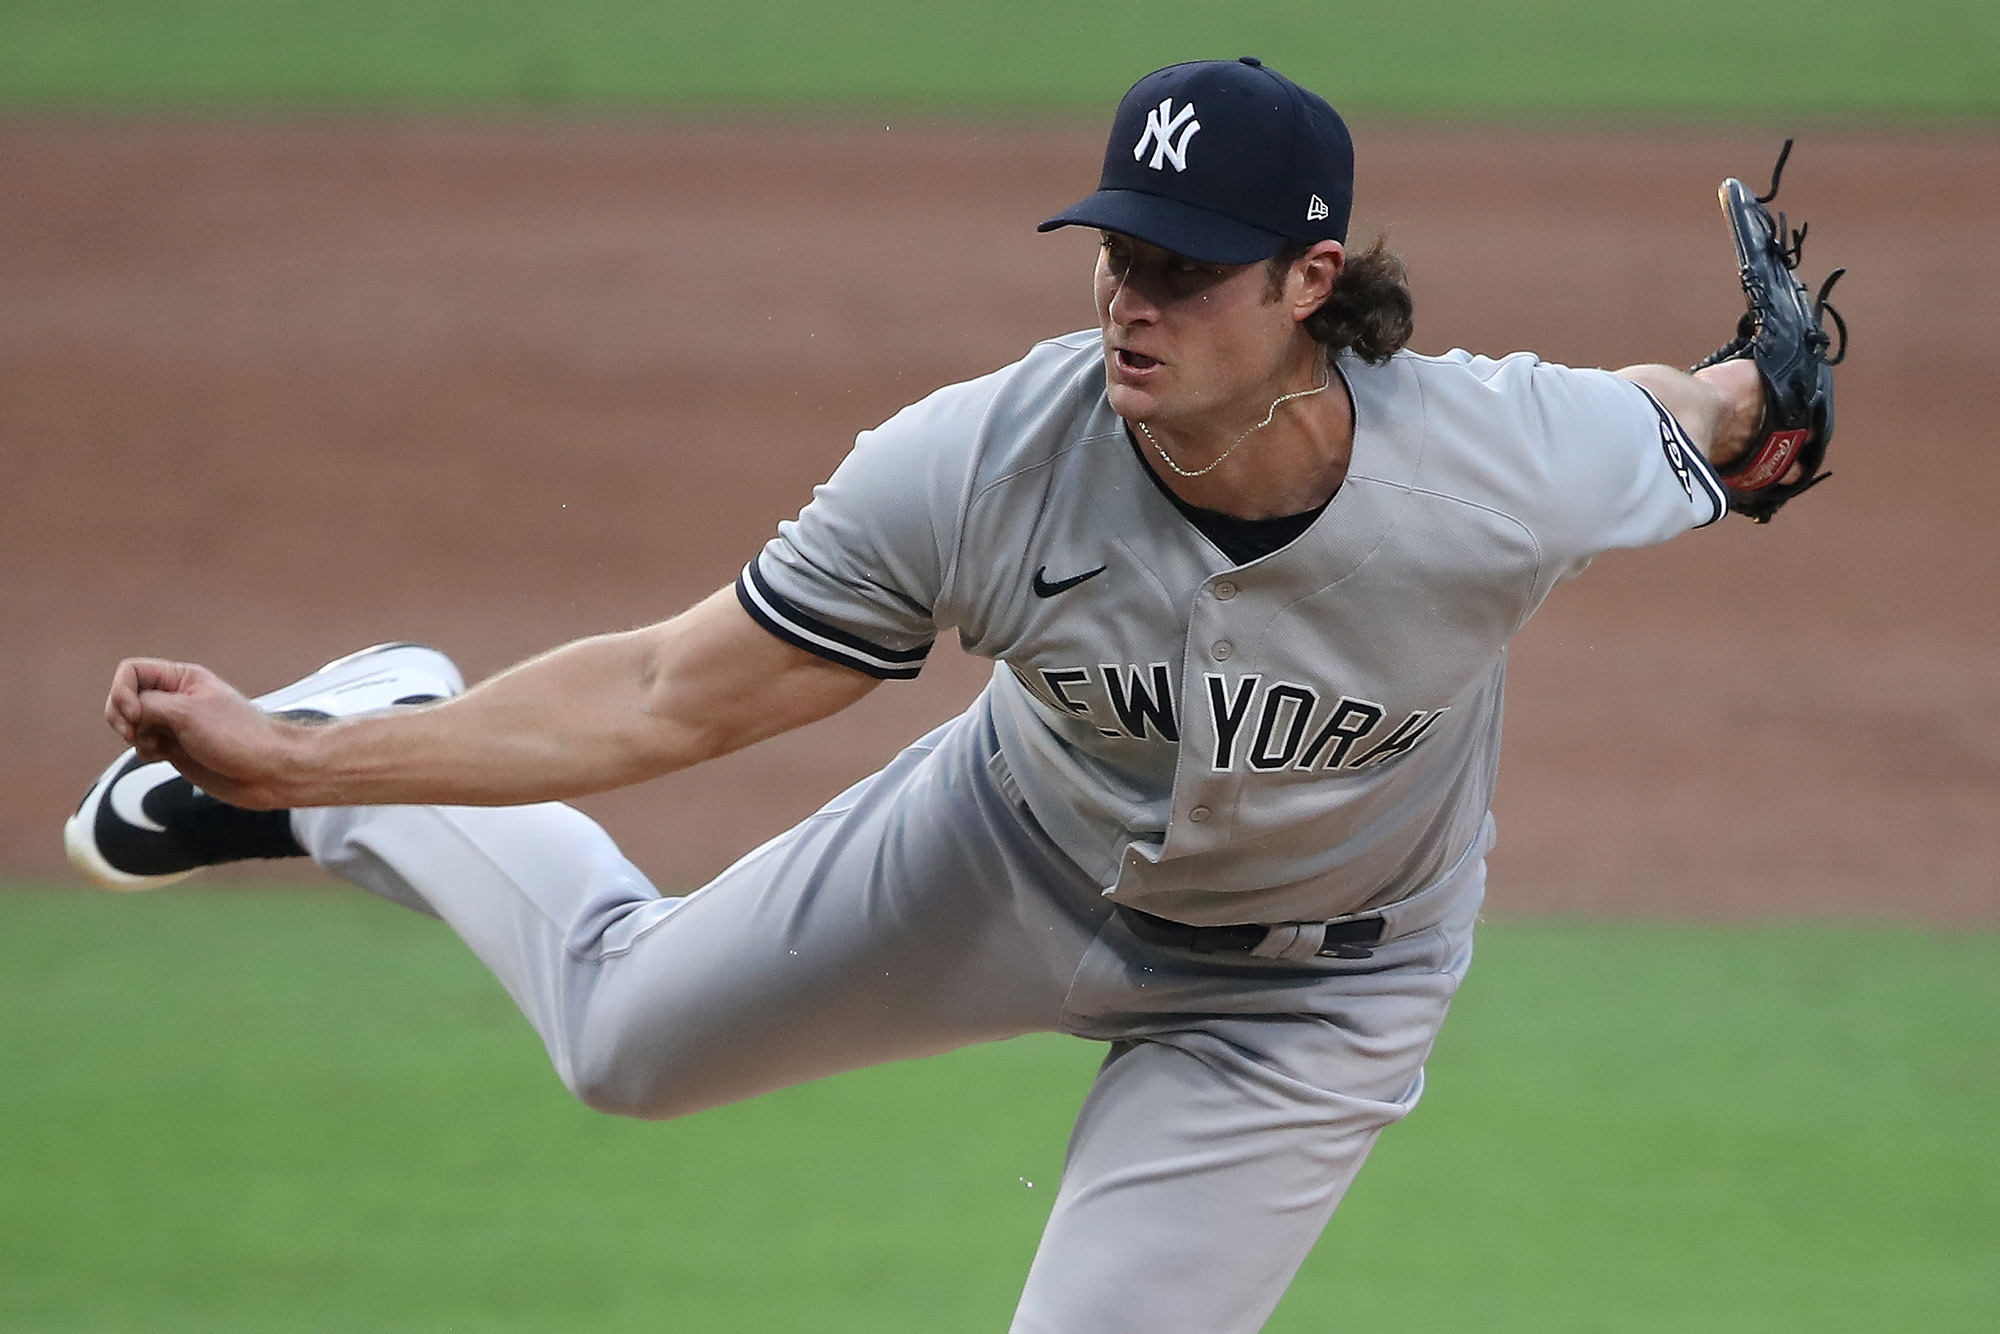 Yankees' Gerrit Cole setup for big playoff moment vs. Rays in ALDS